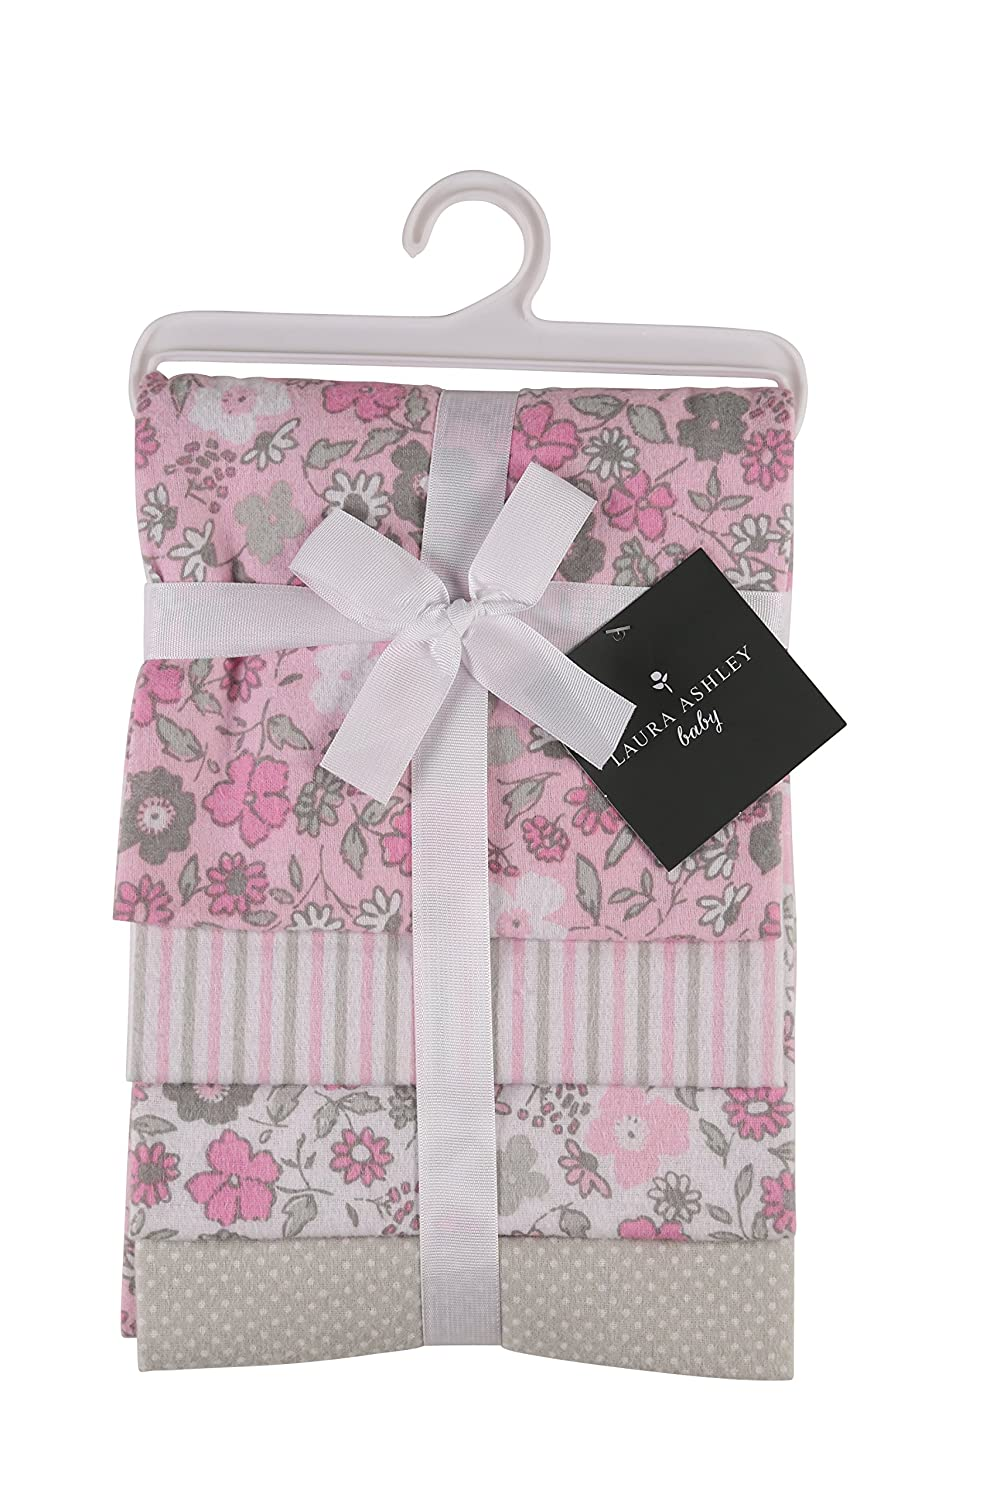 Laura Ashley 4 Piece Laddered Receiving Blankets, Abby Print Cudlie Accessories GS70962